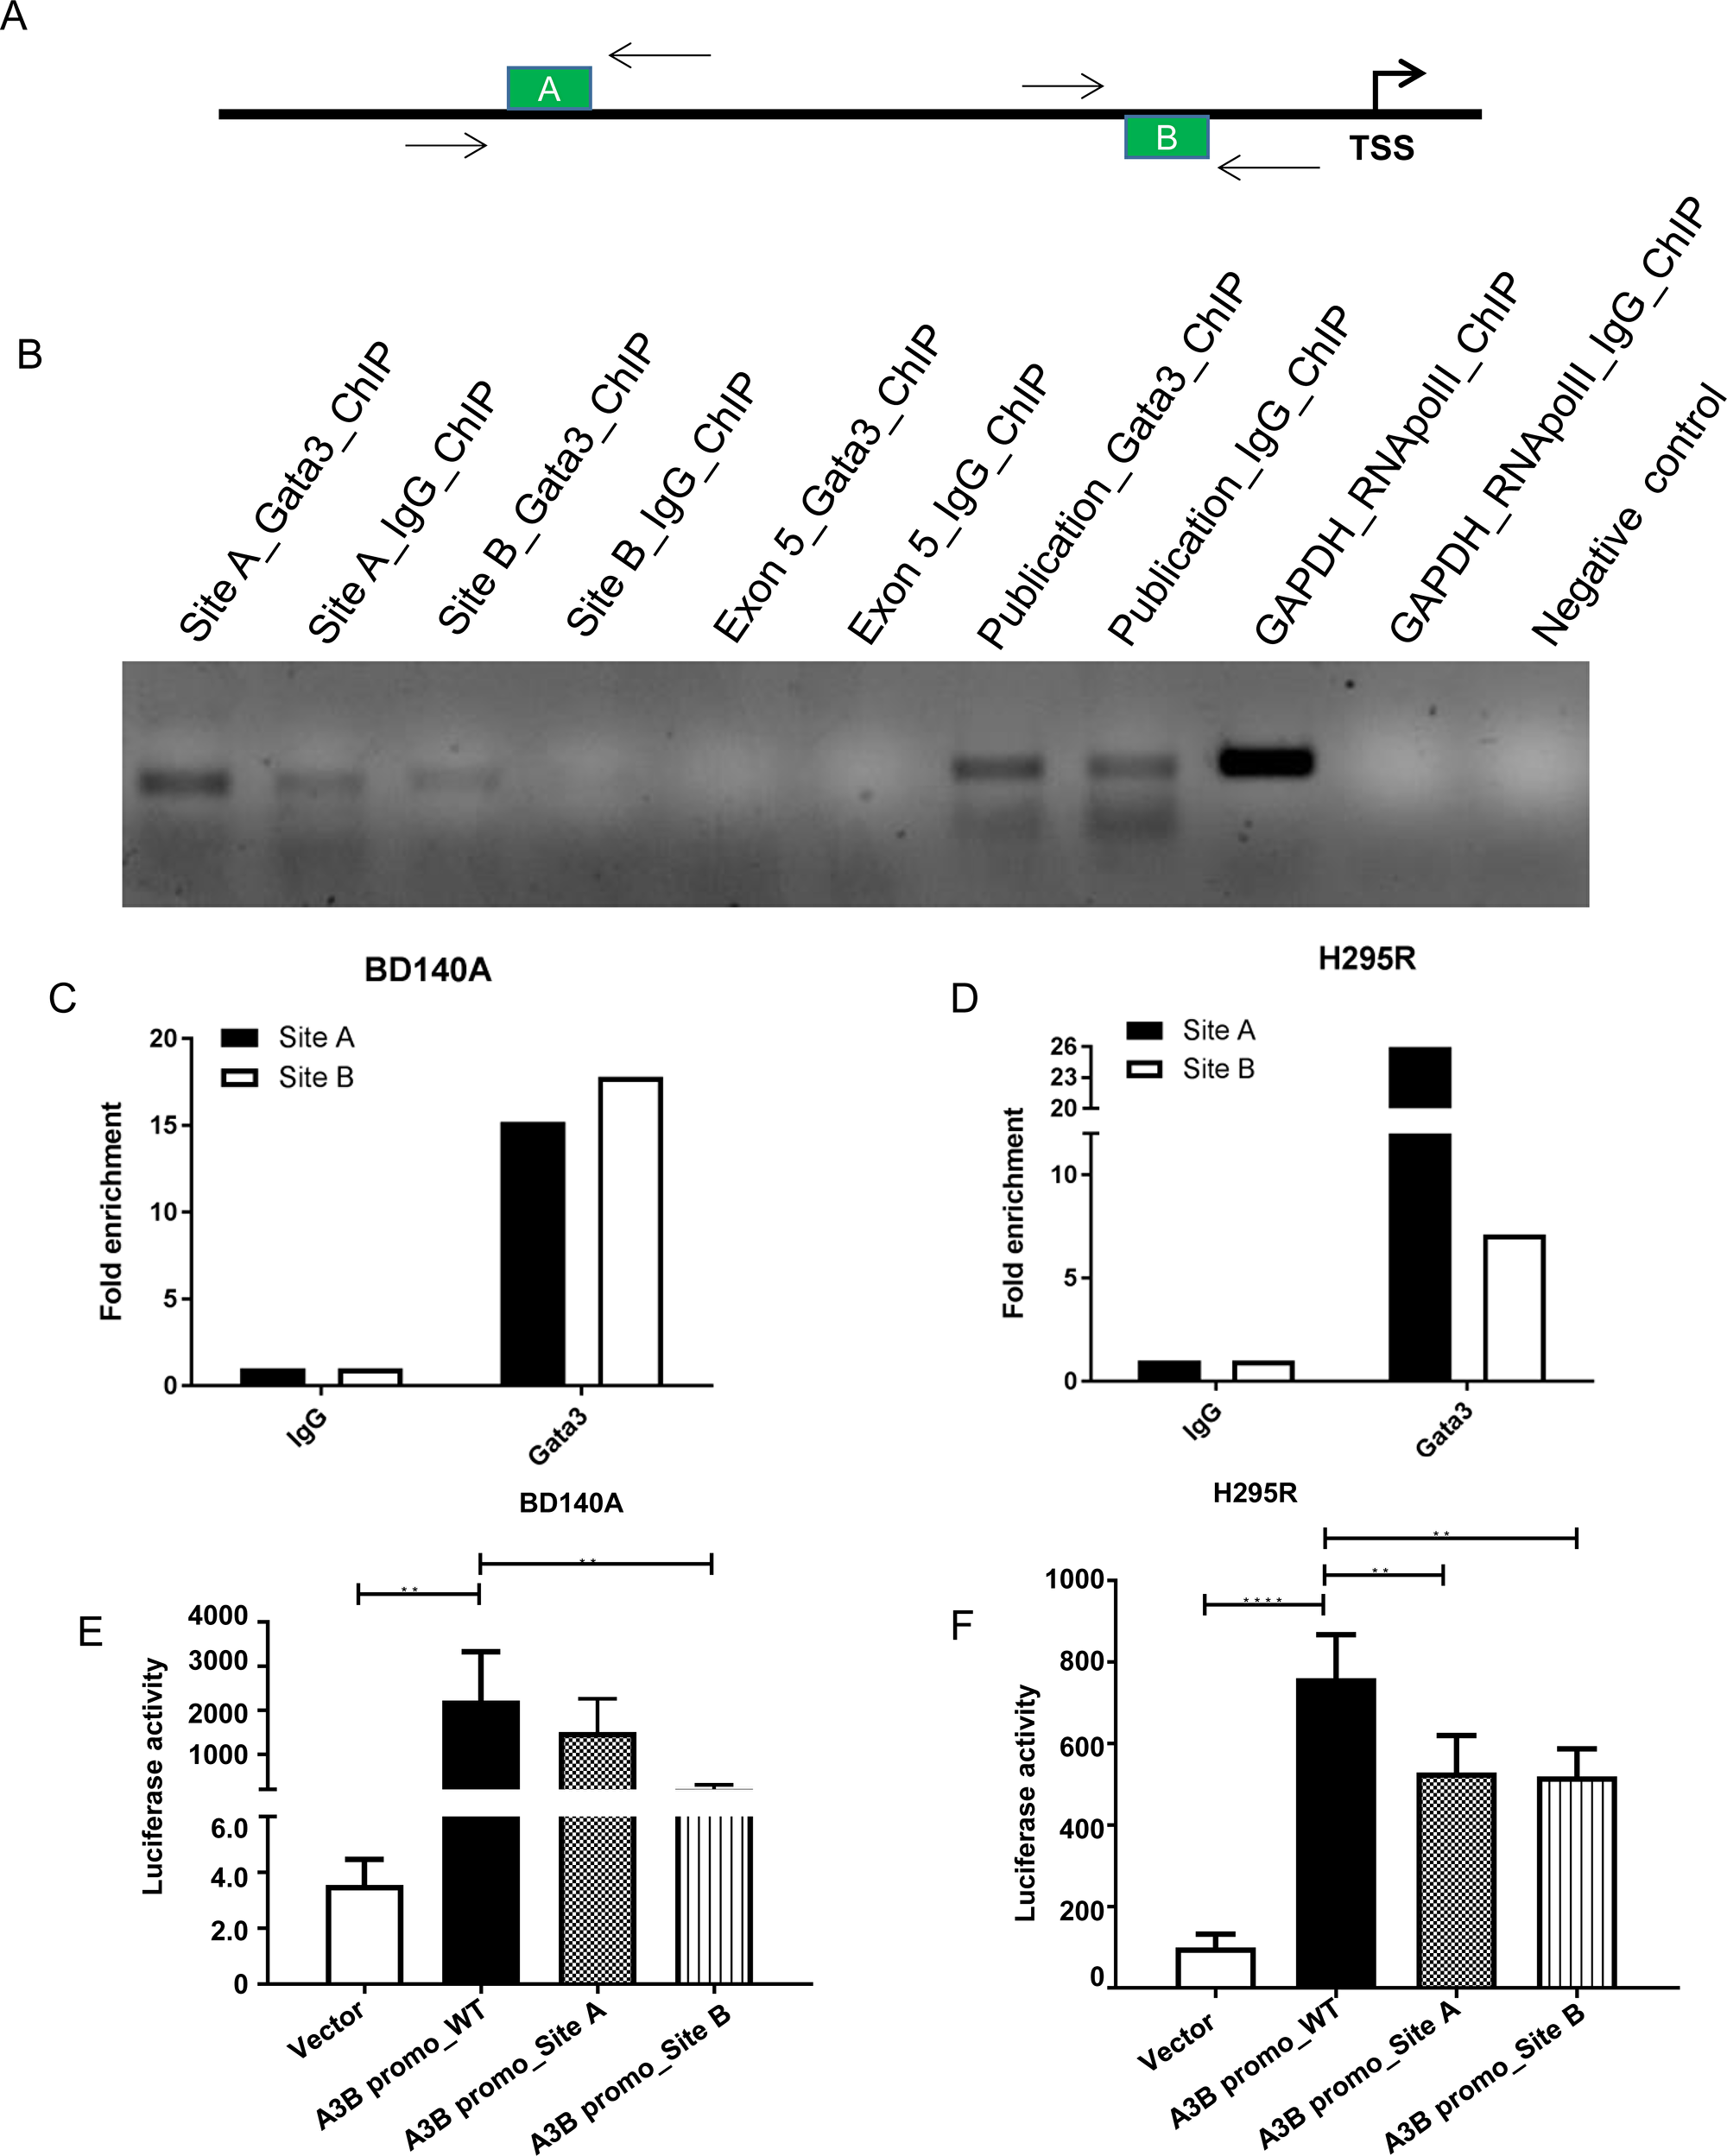 GATA3 binds directly to the APOBEC3B promoter region and regulate its transcription.